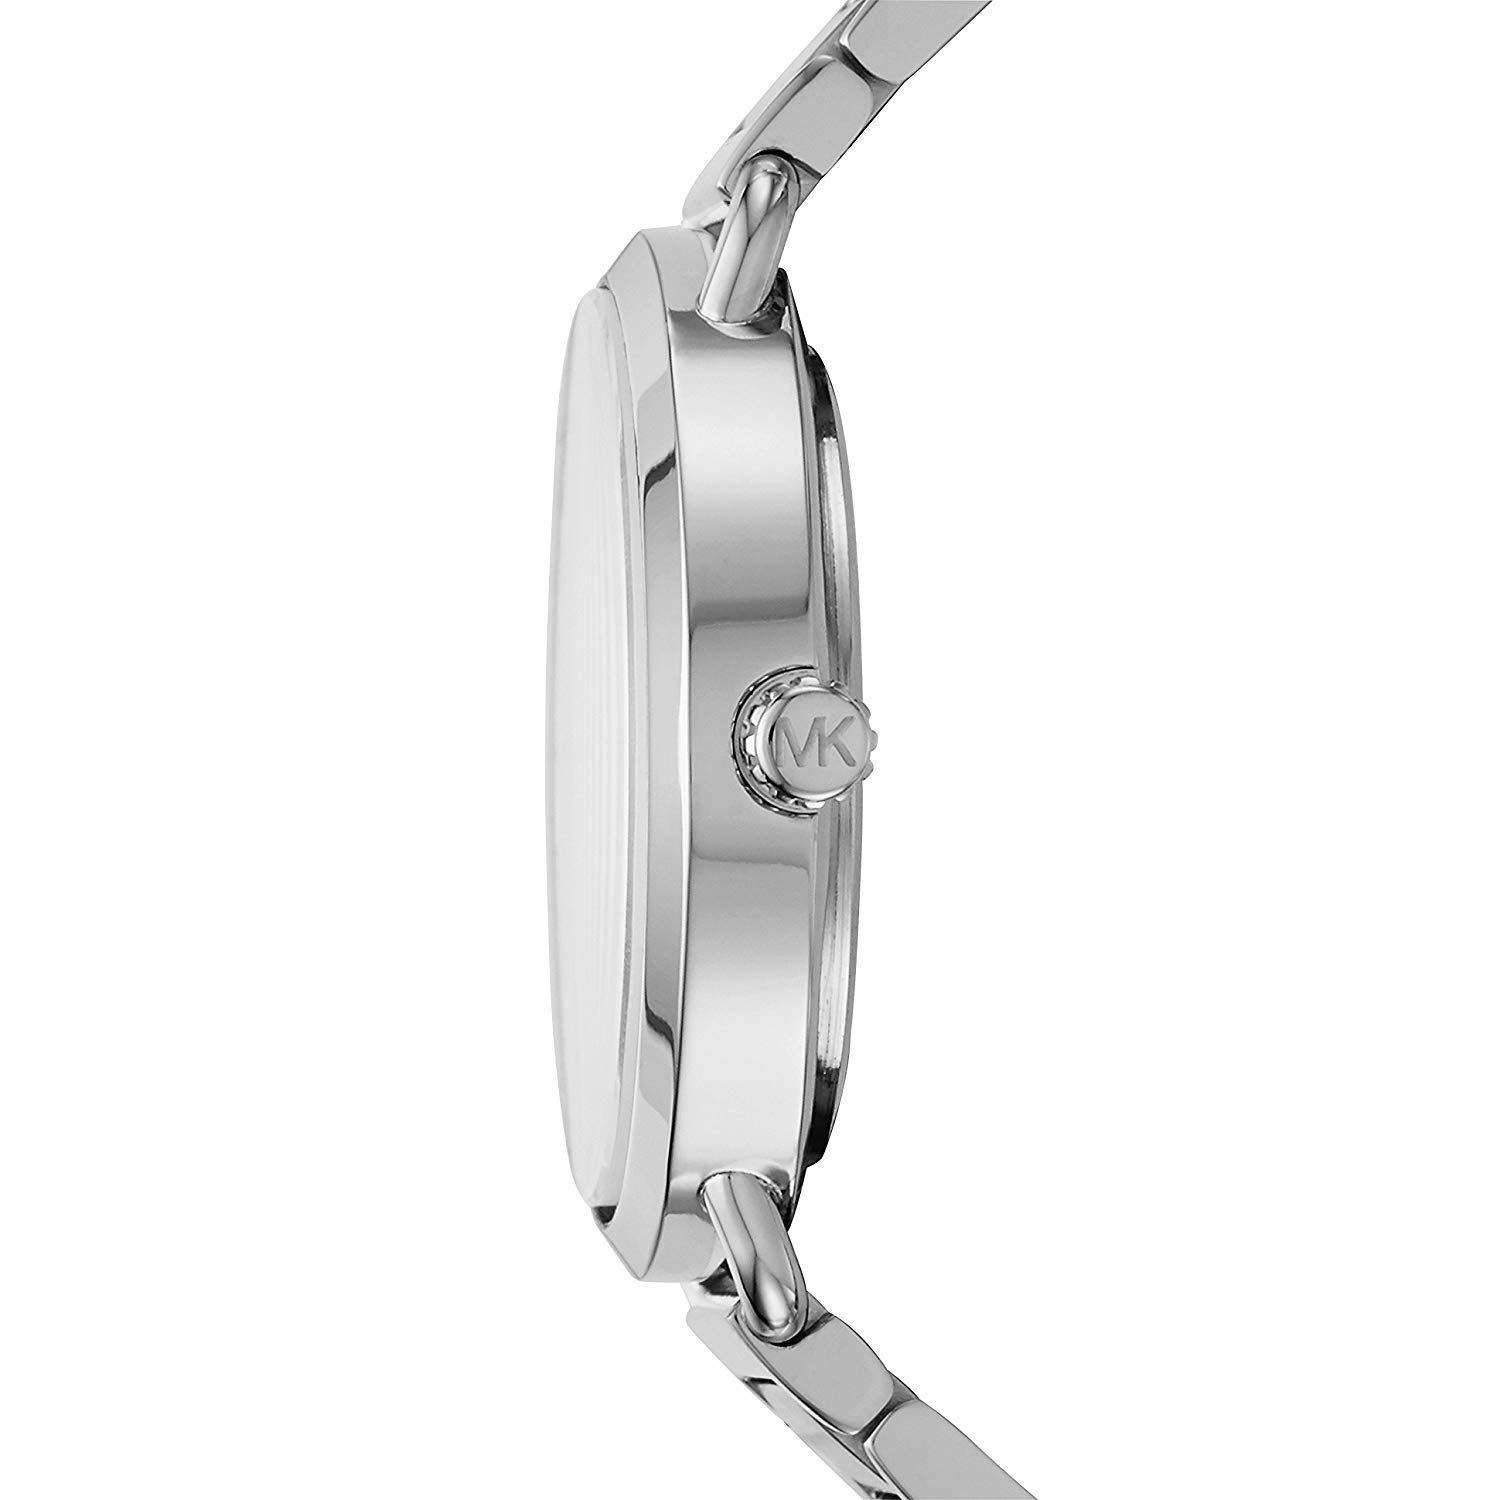 Michael Kors Women Portia Watch Stainless Steel Strap Steel Umisfashion Store